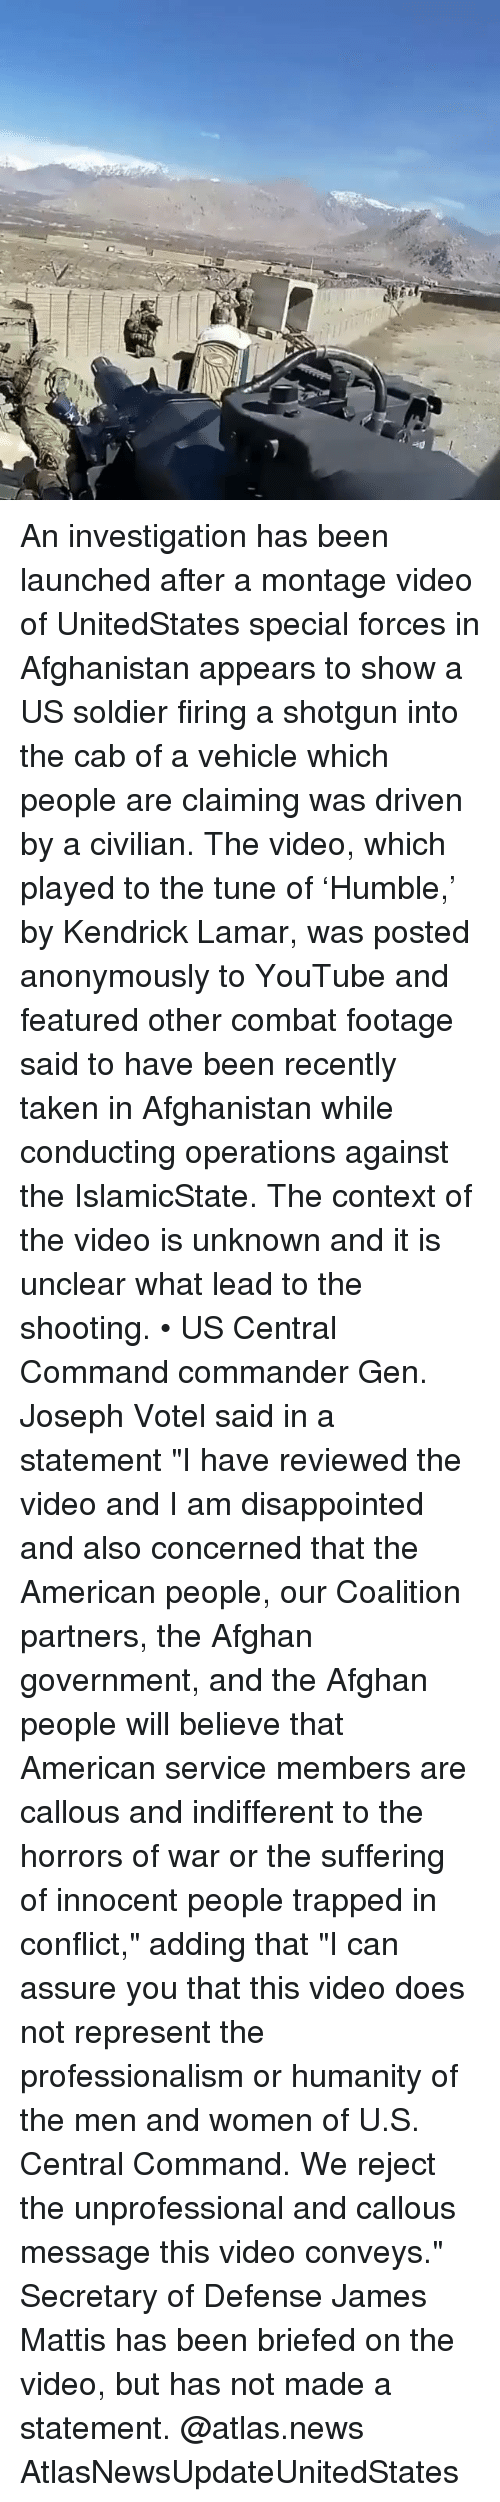 "Afghan: An investigation has been launched after a montage video of UnitedStates special forces in Afghanistan appears to show a US soldier firing a shotgun into the cab of a vehicle which people are claiming was driven by a civilian. The video, which played to the tune of 'Humble,' by Kendrick Lamar, was posted anonymously to YouTube and featured other combat footage said to have been recently taken in Afghanistan while conducting operations against the IslamicState. The context of the video is unknown and it is unclear what lead to the shooting. • US Central Command commander Gen. Joseph Votel said in a statement ""I have reviewed the video and I am disappointed and also concerned that the American people, our Coalition partners, the Afghan government, and the Afghan people will believe that American service members are callous and indifferent to the horrors of war or the suffering of innocent people trapped in conflict,"" adding that ""I can assure you that this video does not represent the professionalism or humanity of the men and women of U.S. Central Command. We reject the unprofessional and callous message this video conveys."" Secretary of Defense James Mattis has been briefed on the video, but has not made a statement. @atlas.news AtlasNewsUpdateUnitedStates"